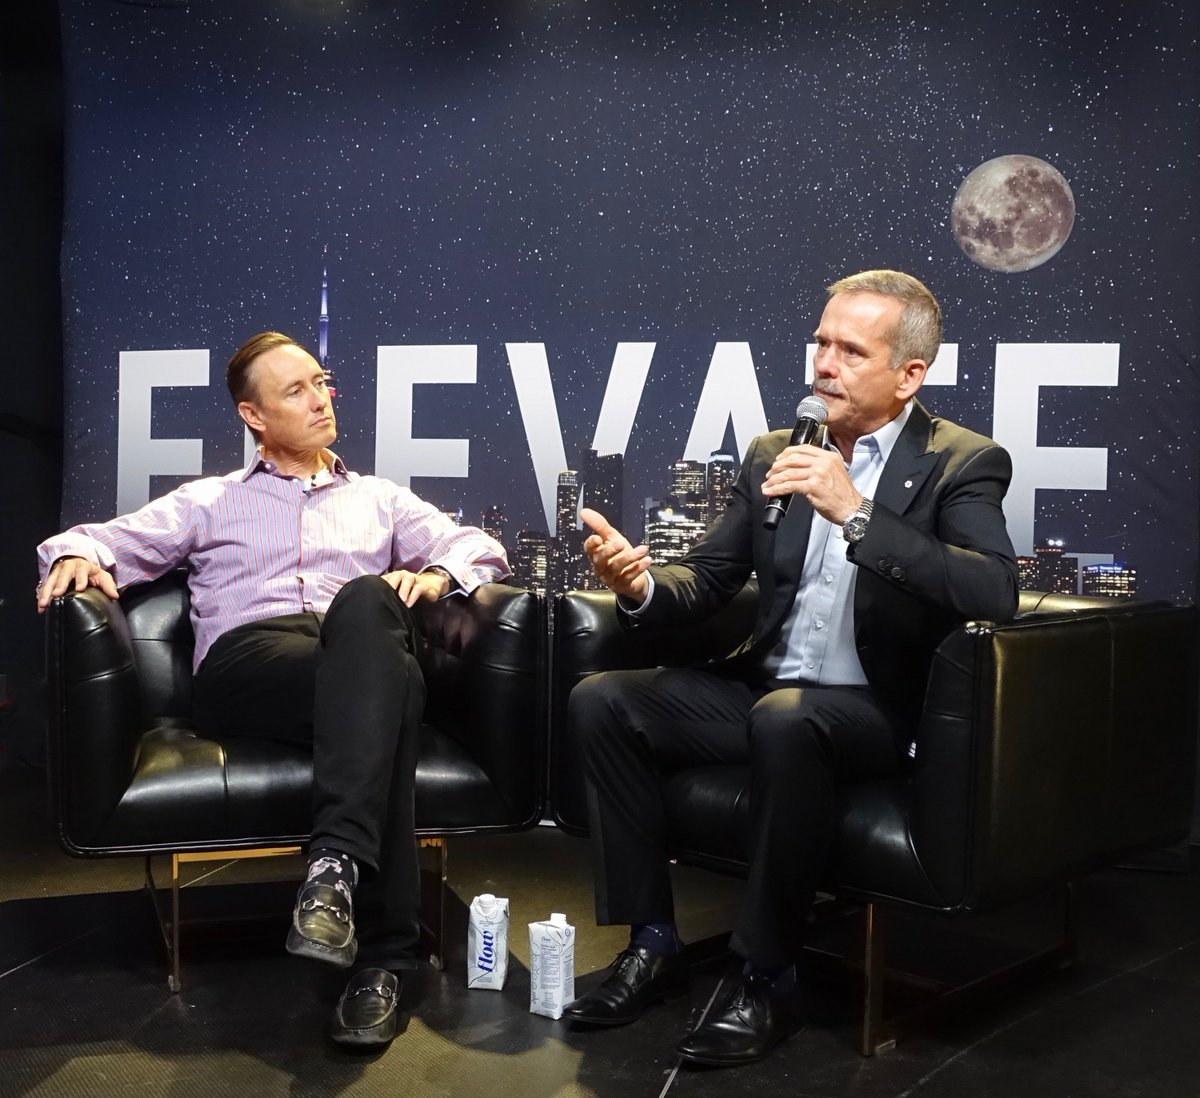 Hadfield interviewed me after his keynote, and the moon is his thought bubble. We covered a panoply of modern moon shots, from meat manufacturing without the animals to machine learning and sentient superintelligence. P.S. His iconic SpaceX image will get an update on Saturday